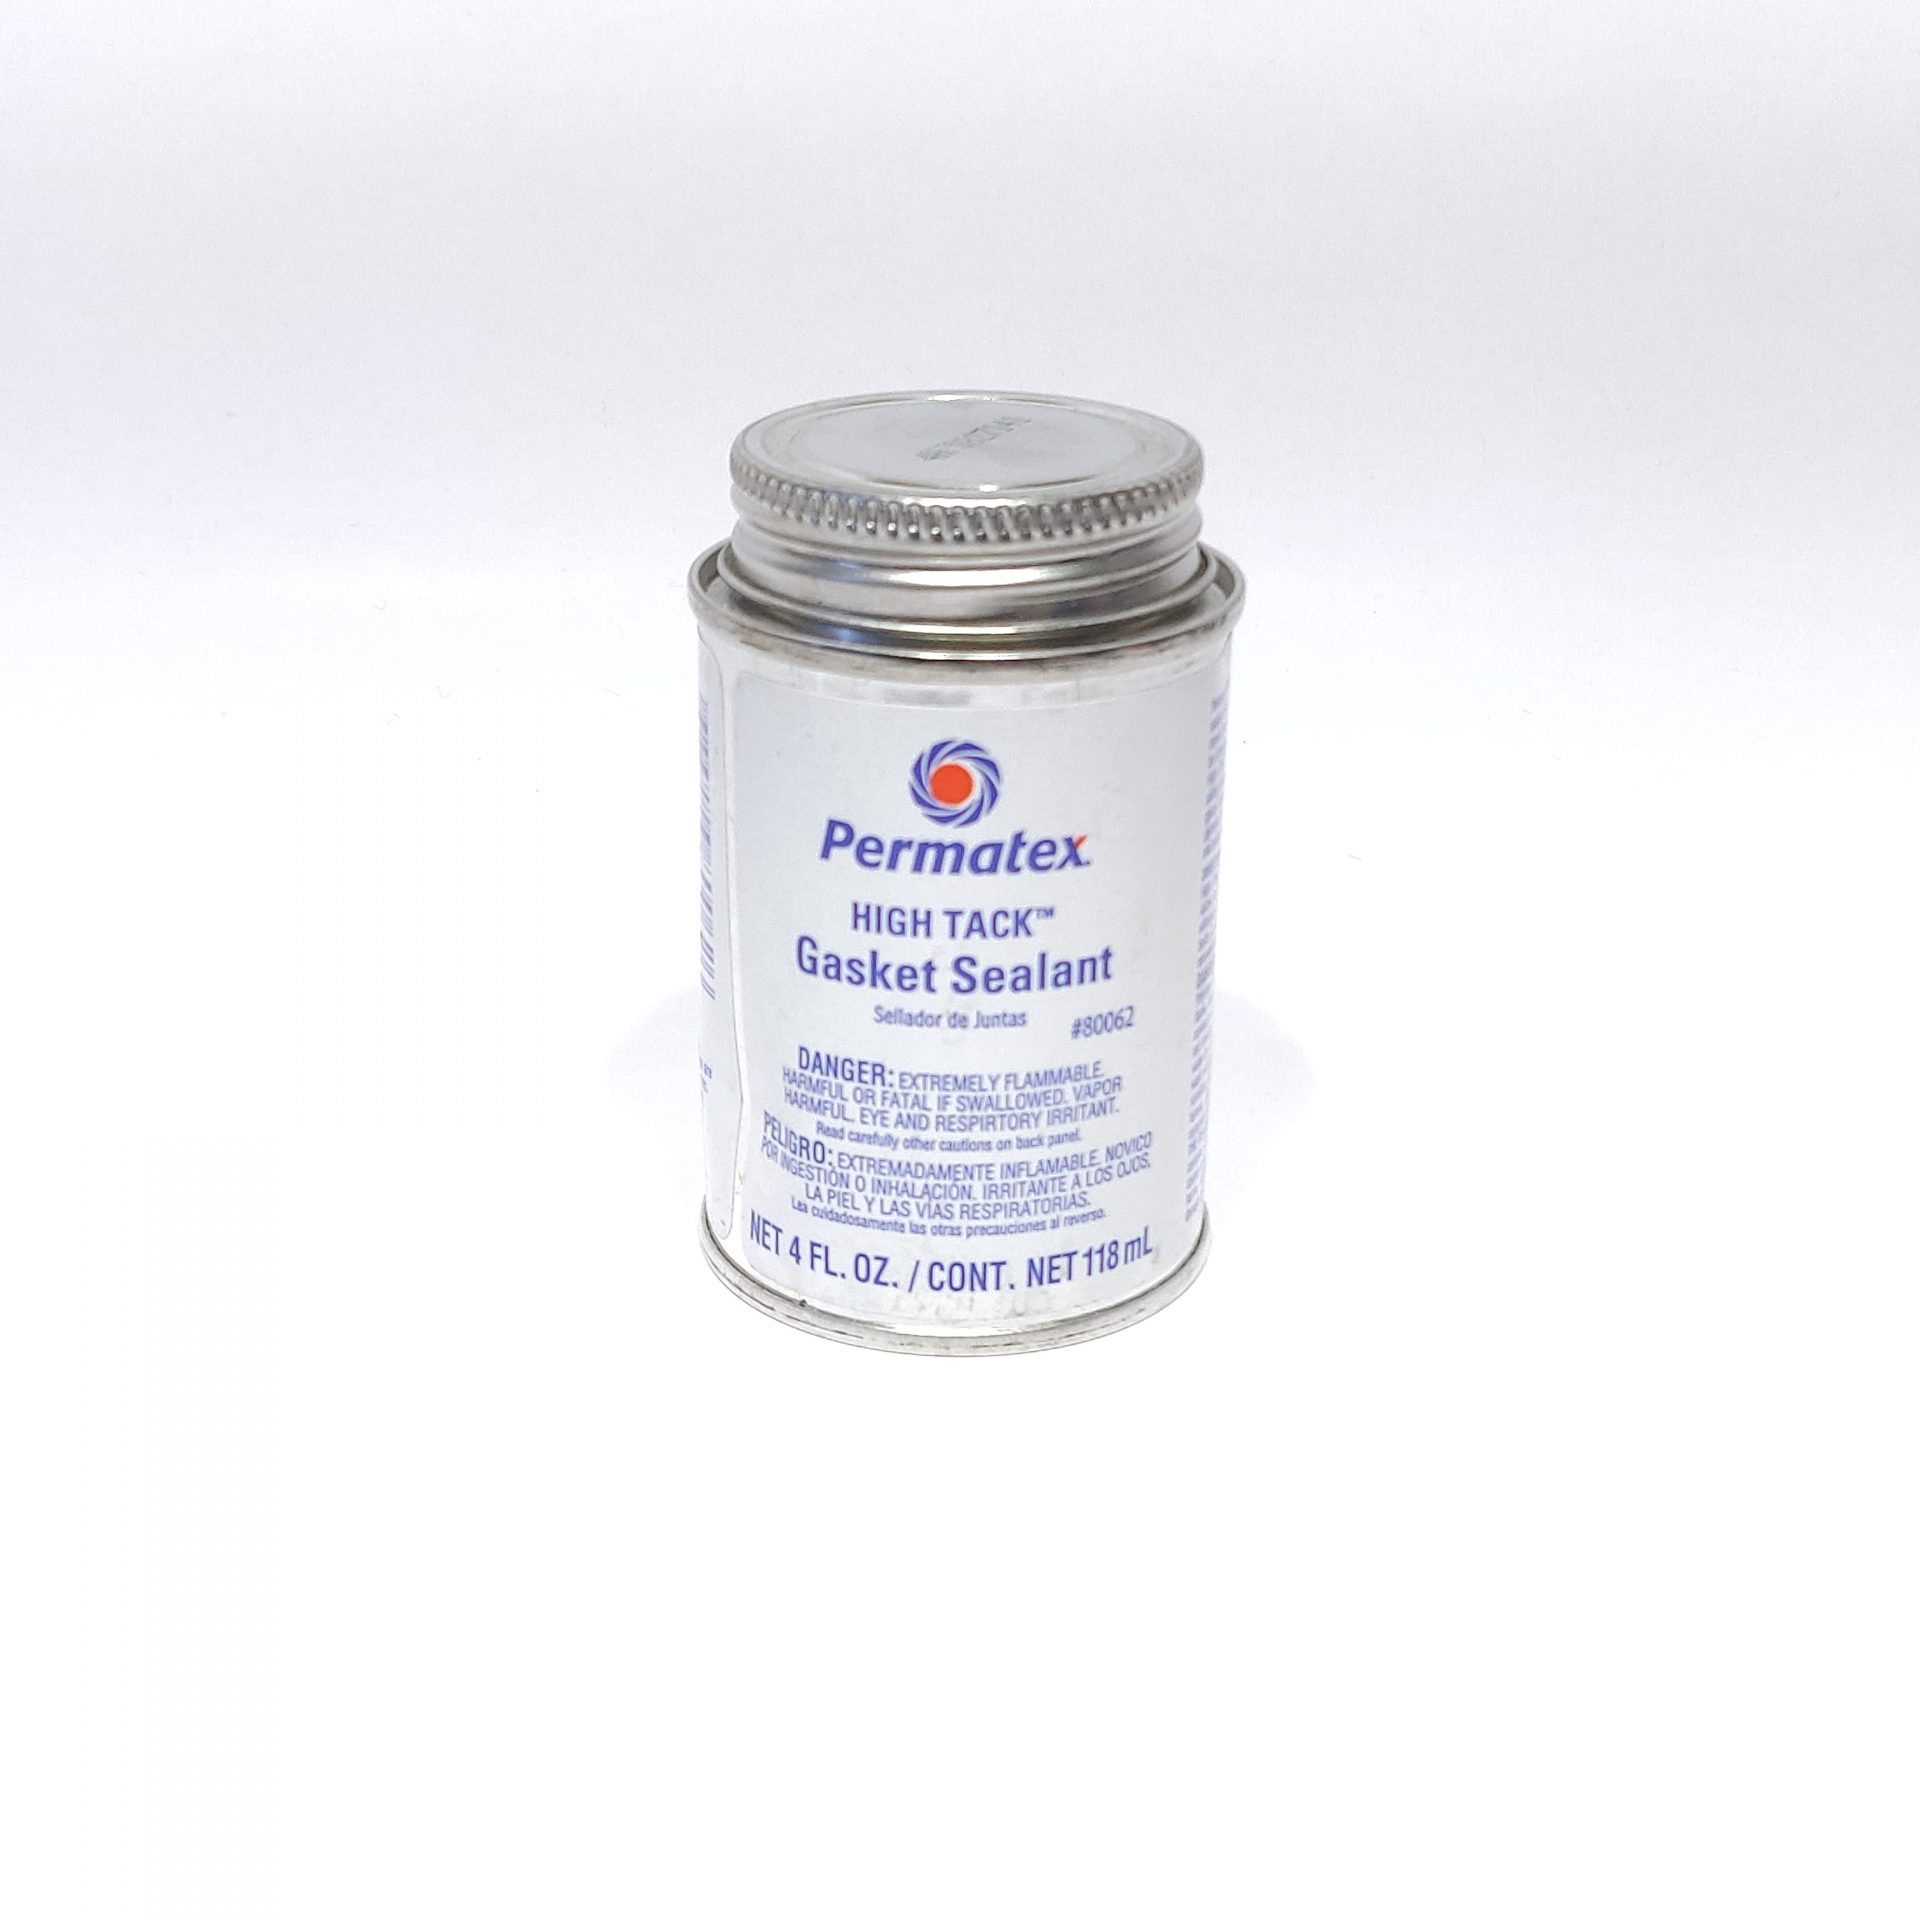 Permatex high tack gasket sealant 118ml